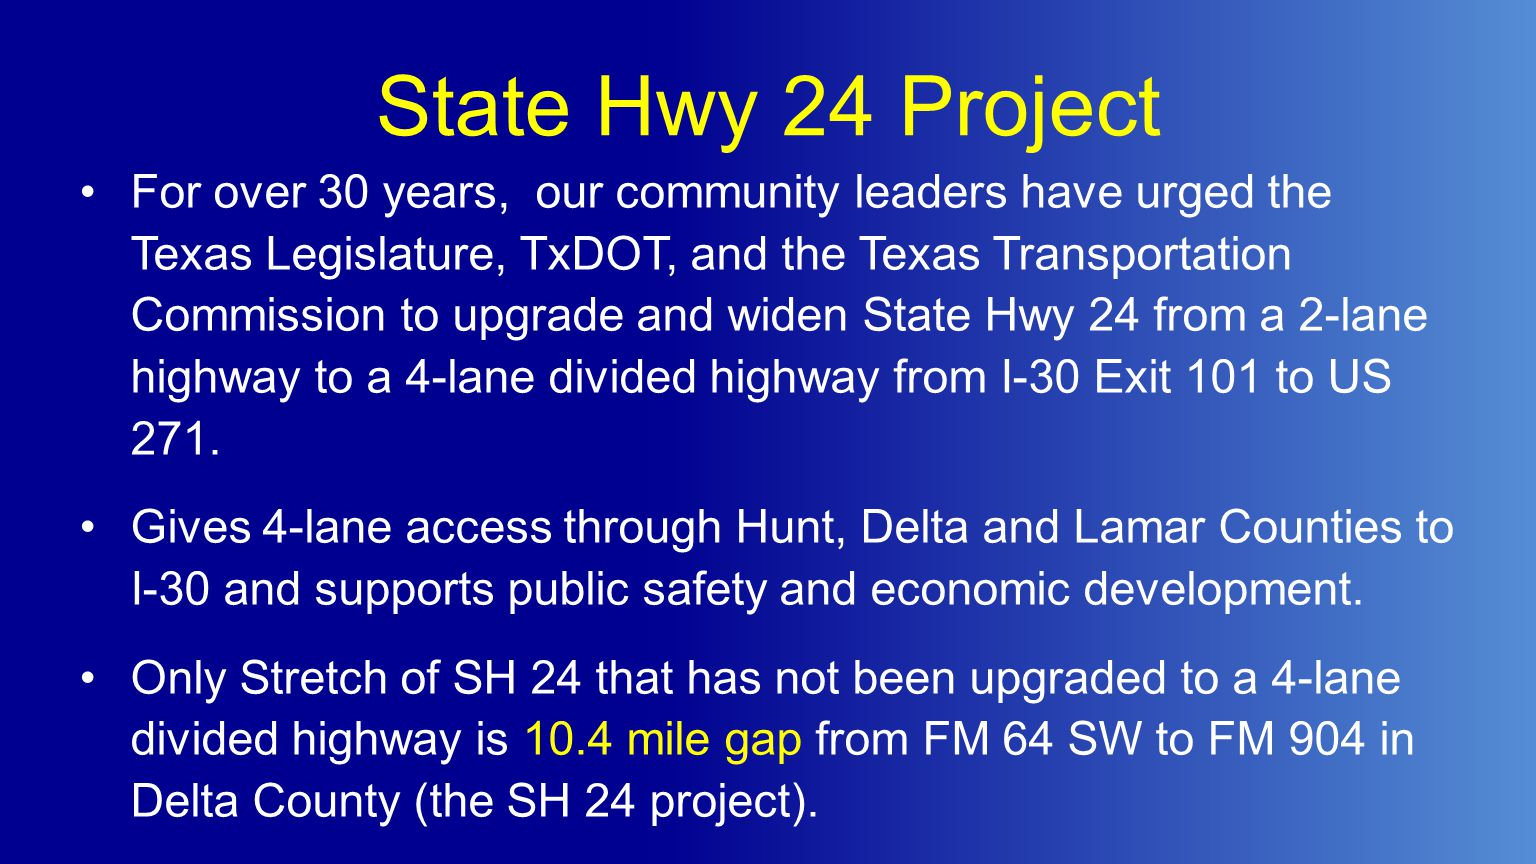 State Hwy 24 Project For over 30 years, our community leaders have urged the Texas Legislature, TxDOT, and the Texas Transportation Commission to upgrade and widen State Hwy 24 from a 2-lane highway to a 4-lane divided highway from I-30 Exit 101 to US 271.